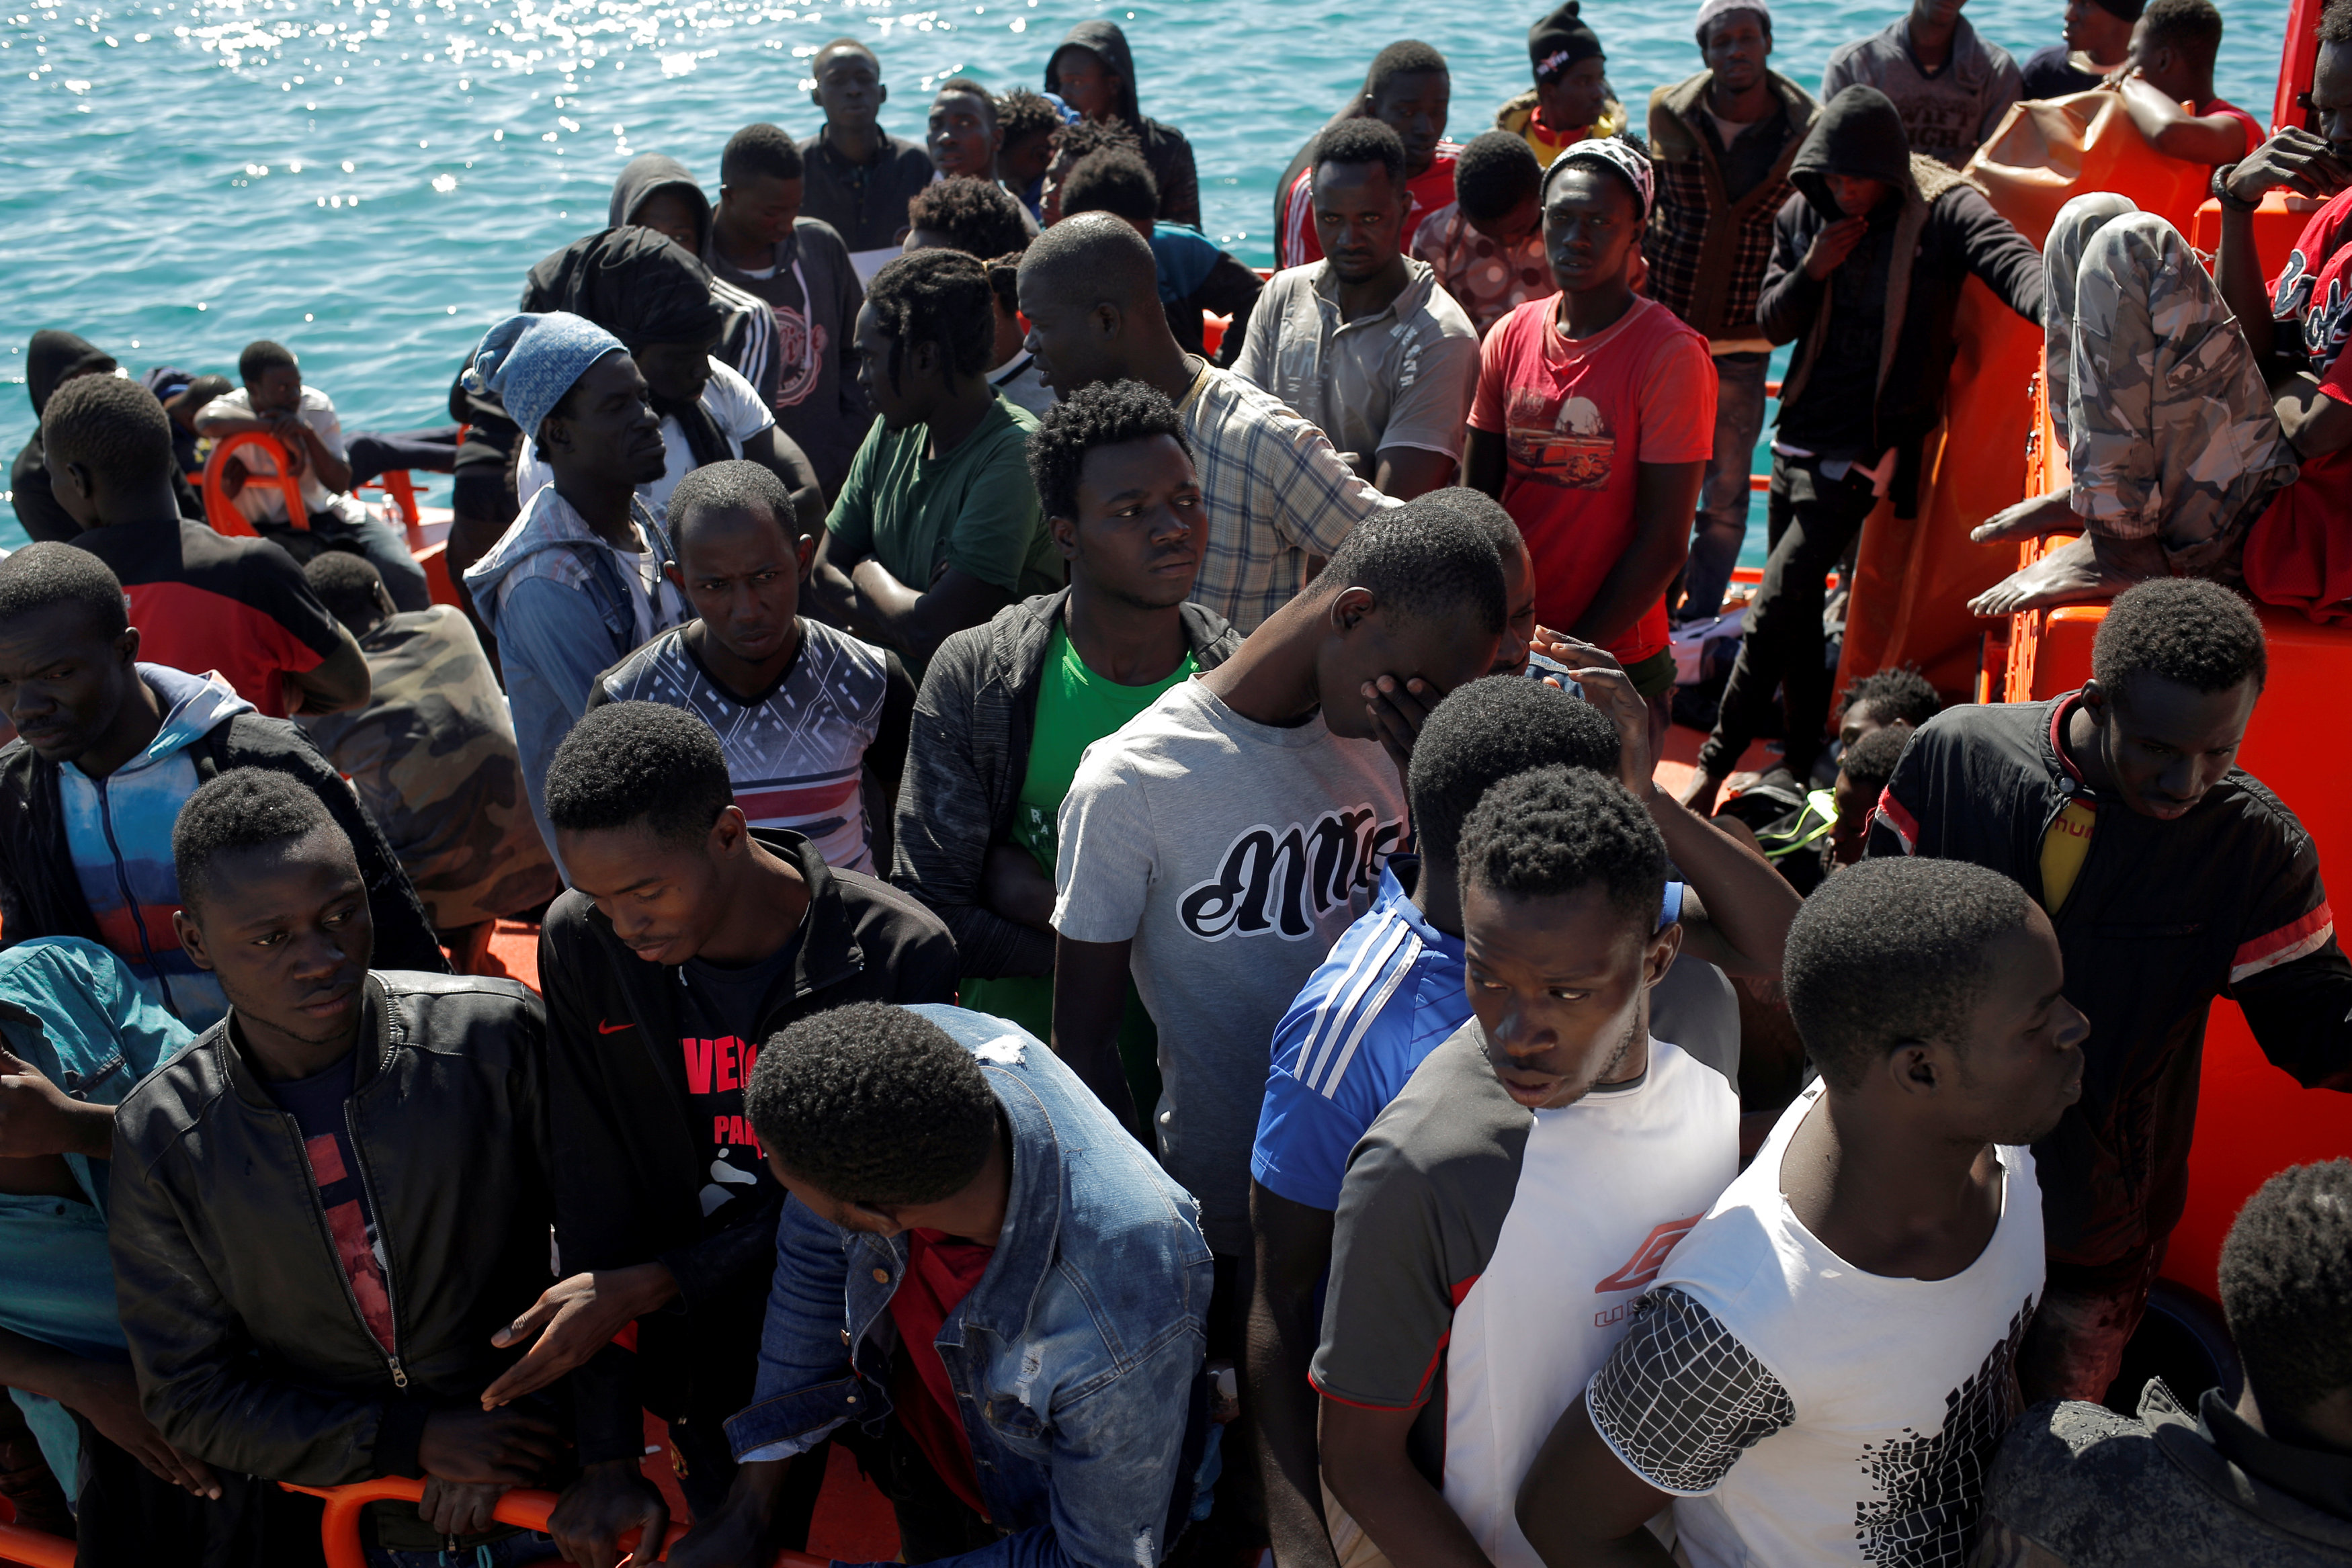 Migrants are seen on a rescue boat as they wait to disembark after arriving at the port of Tarifa